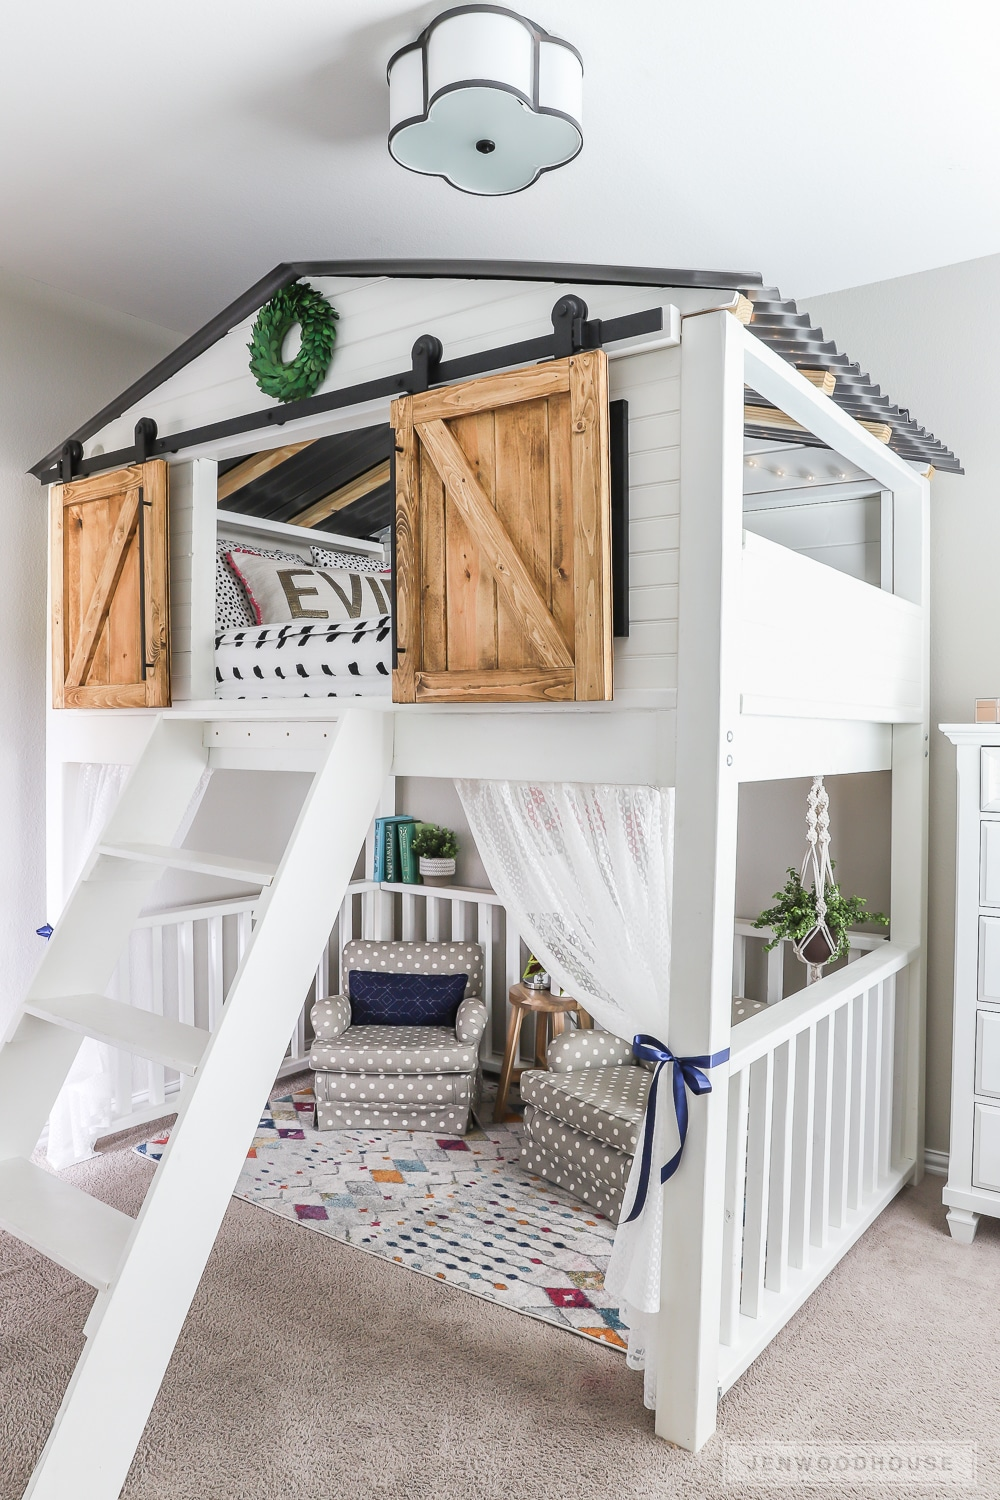 Charmant How To Build A DIY Sliding Barn Door Loft Bed